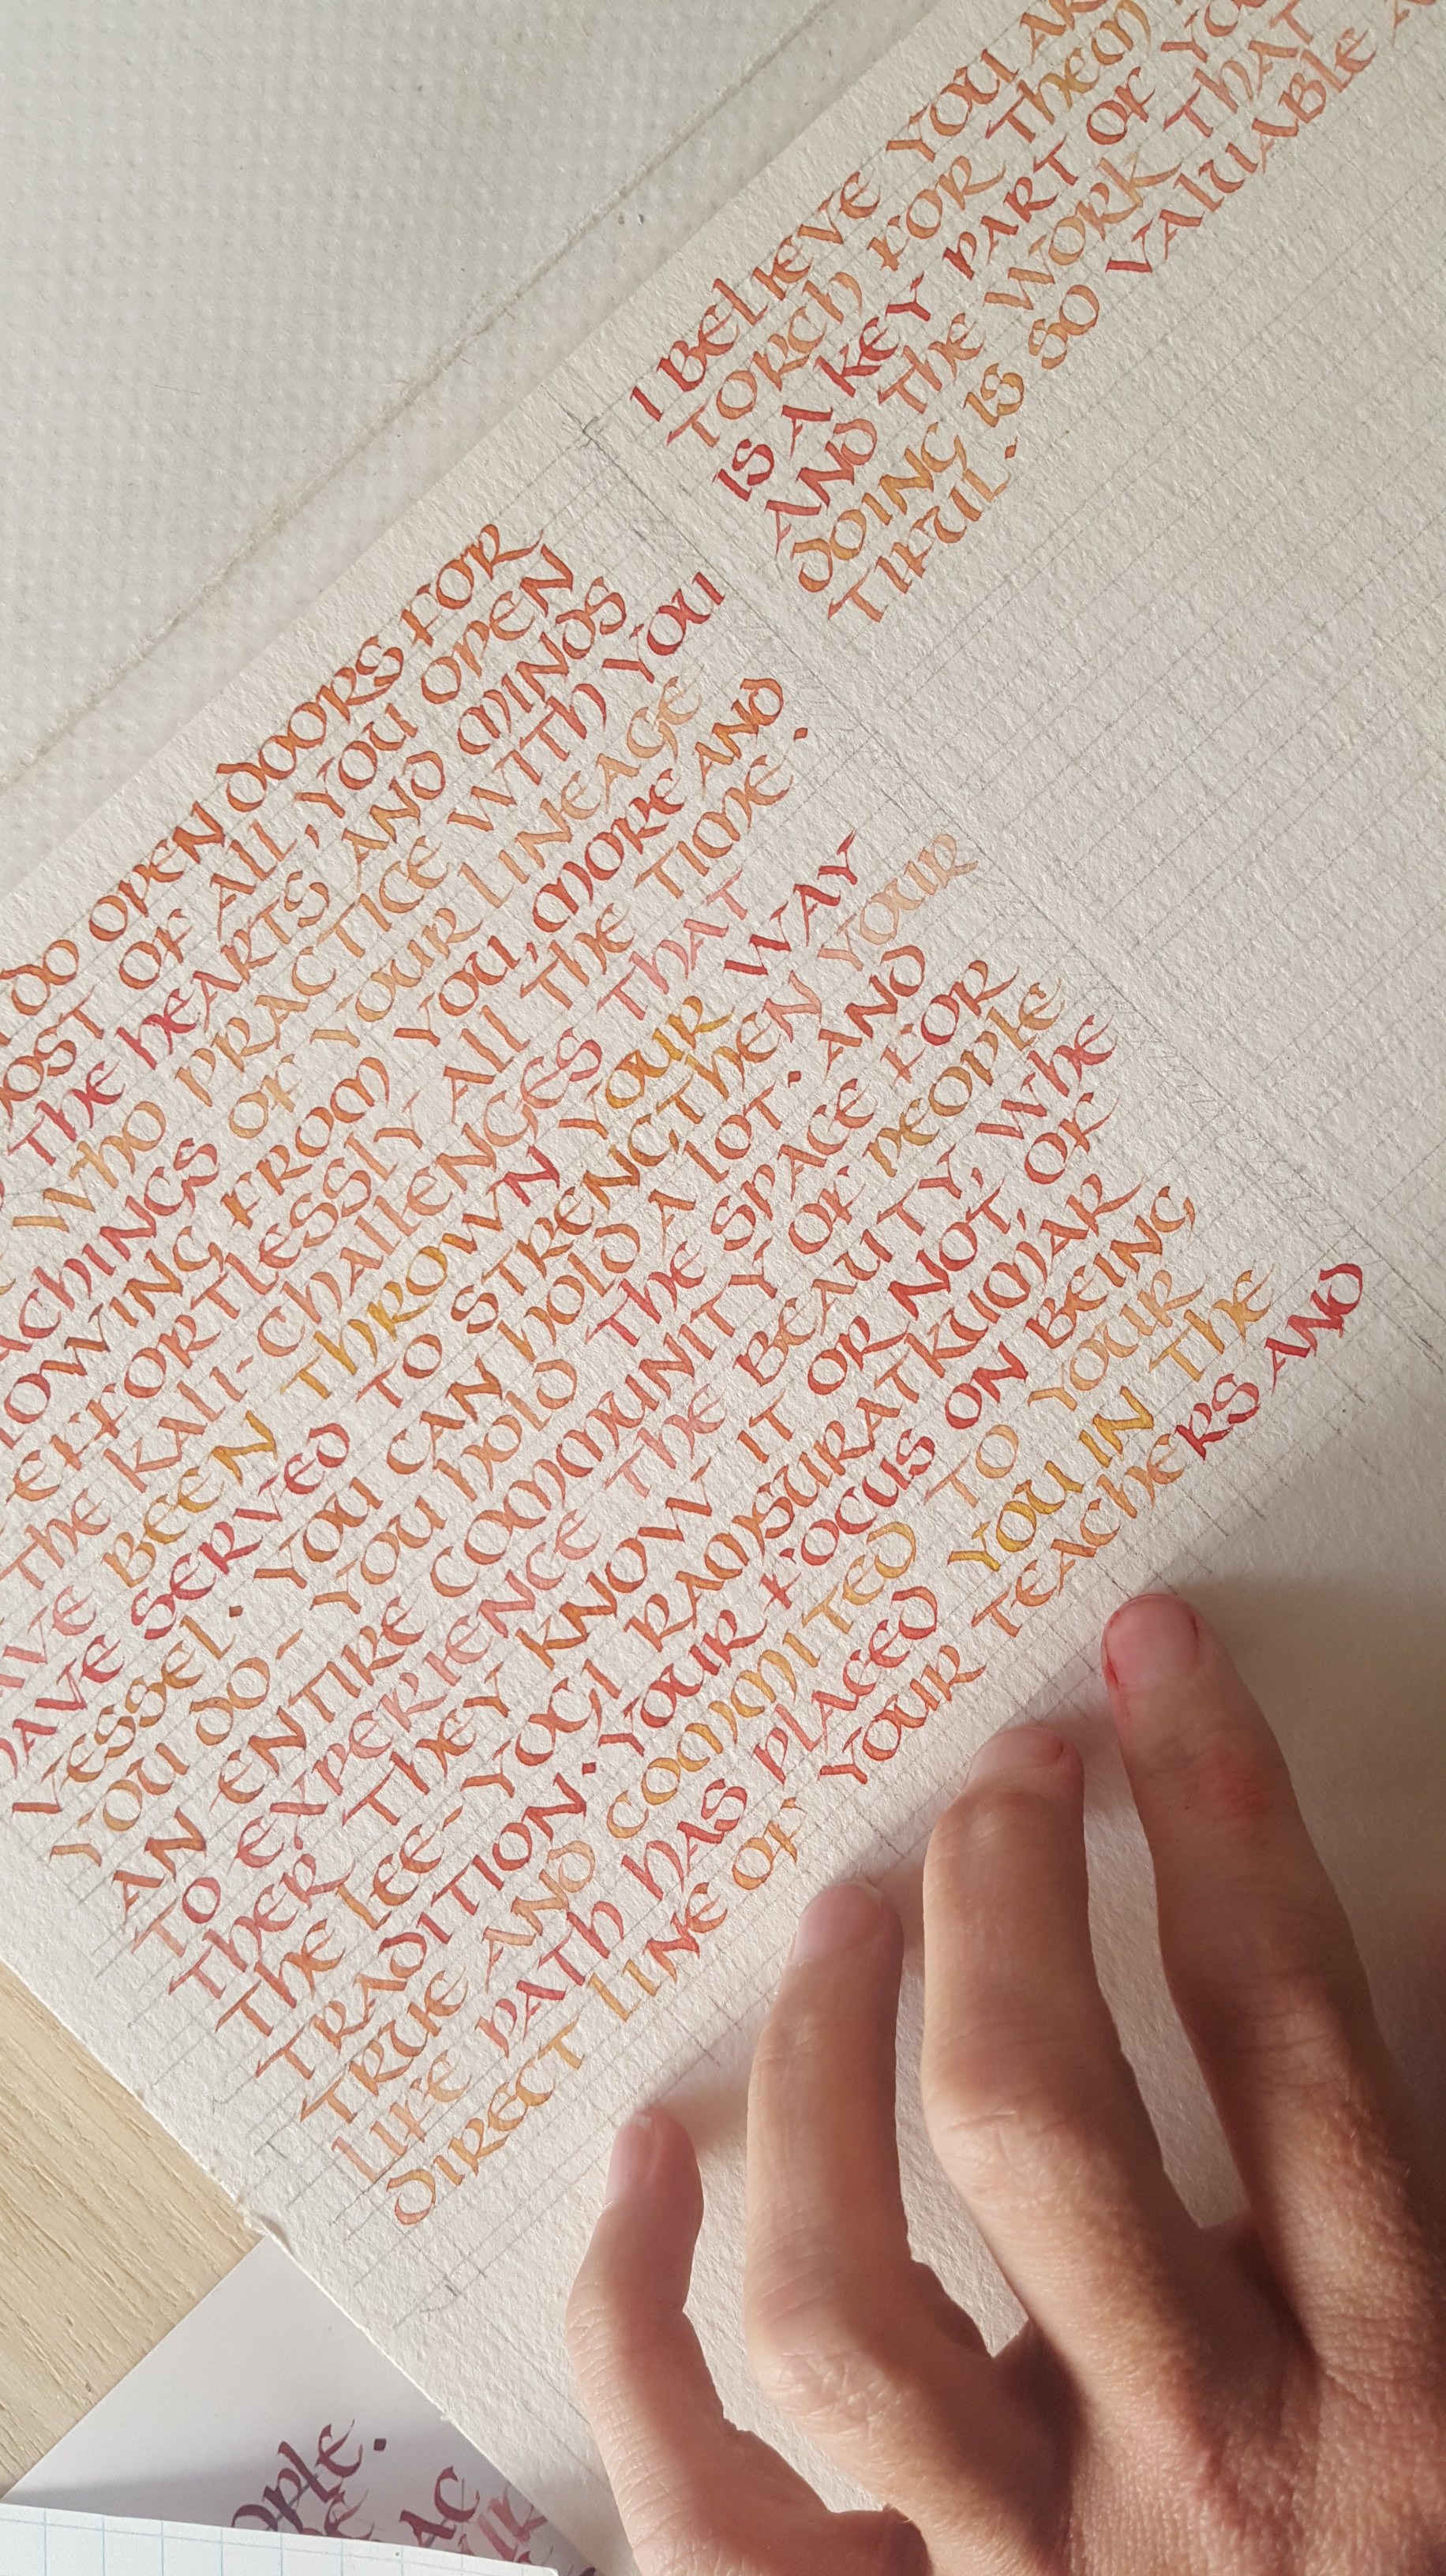 Orange Text in Uncial Calligraphy